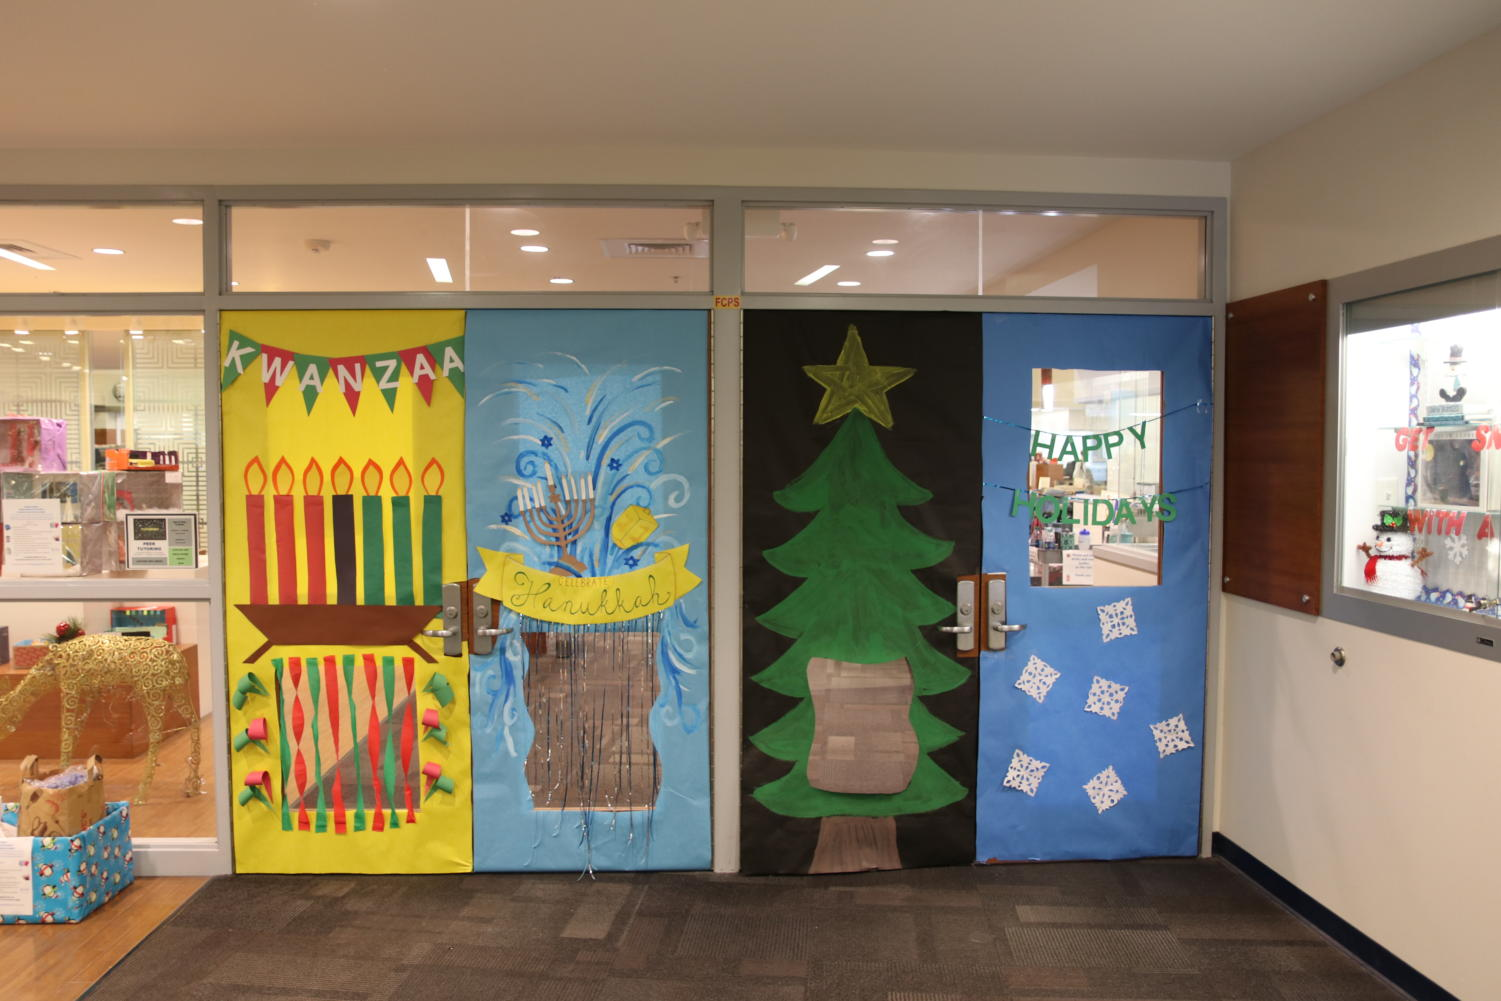 Christmas%2C+Hanukkah+and+Kwanzaa+are+represented+on+the+outside+of+the+Library%E2%80%99s+doors.+There+is+also+an+all-encompassing+winter+themed+door.+